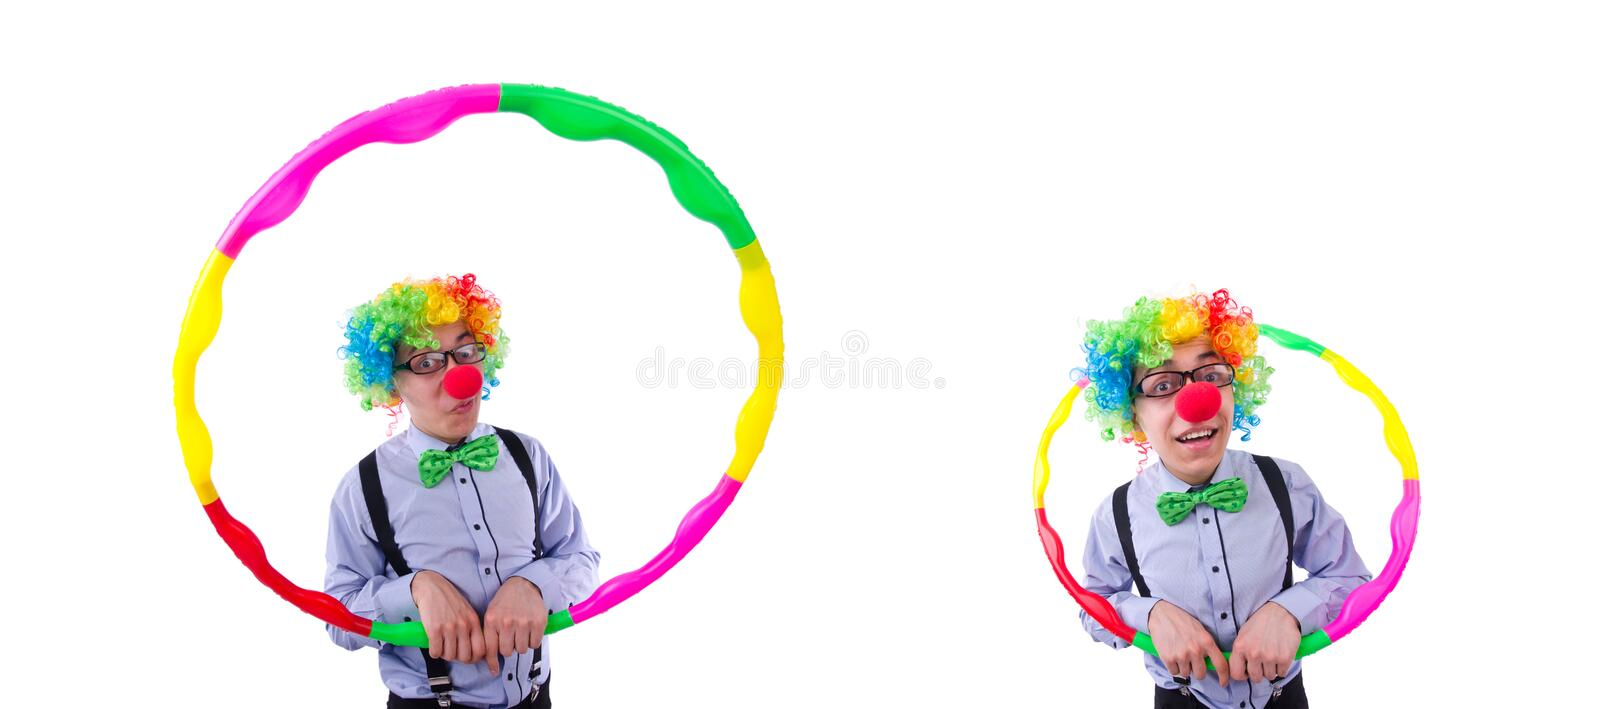 Funny clown with hula hoop on white royalty free stock images